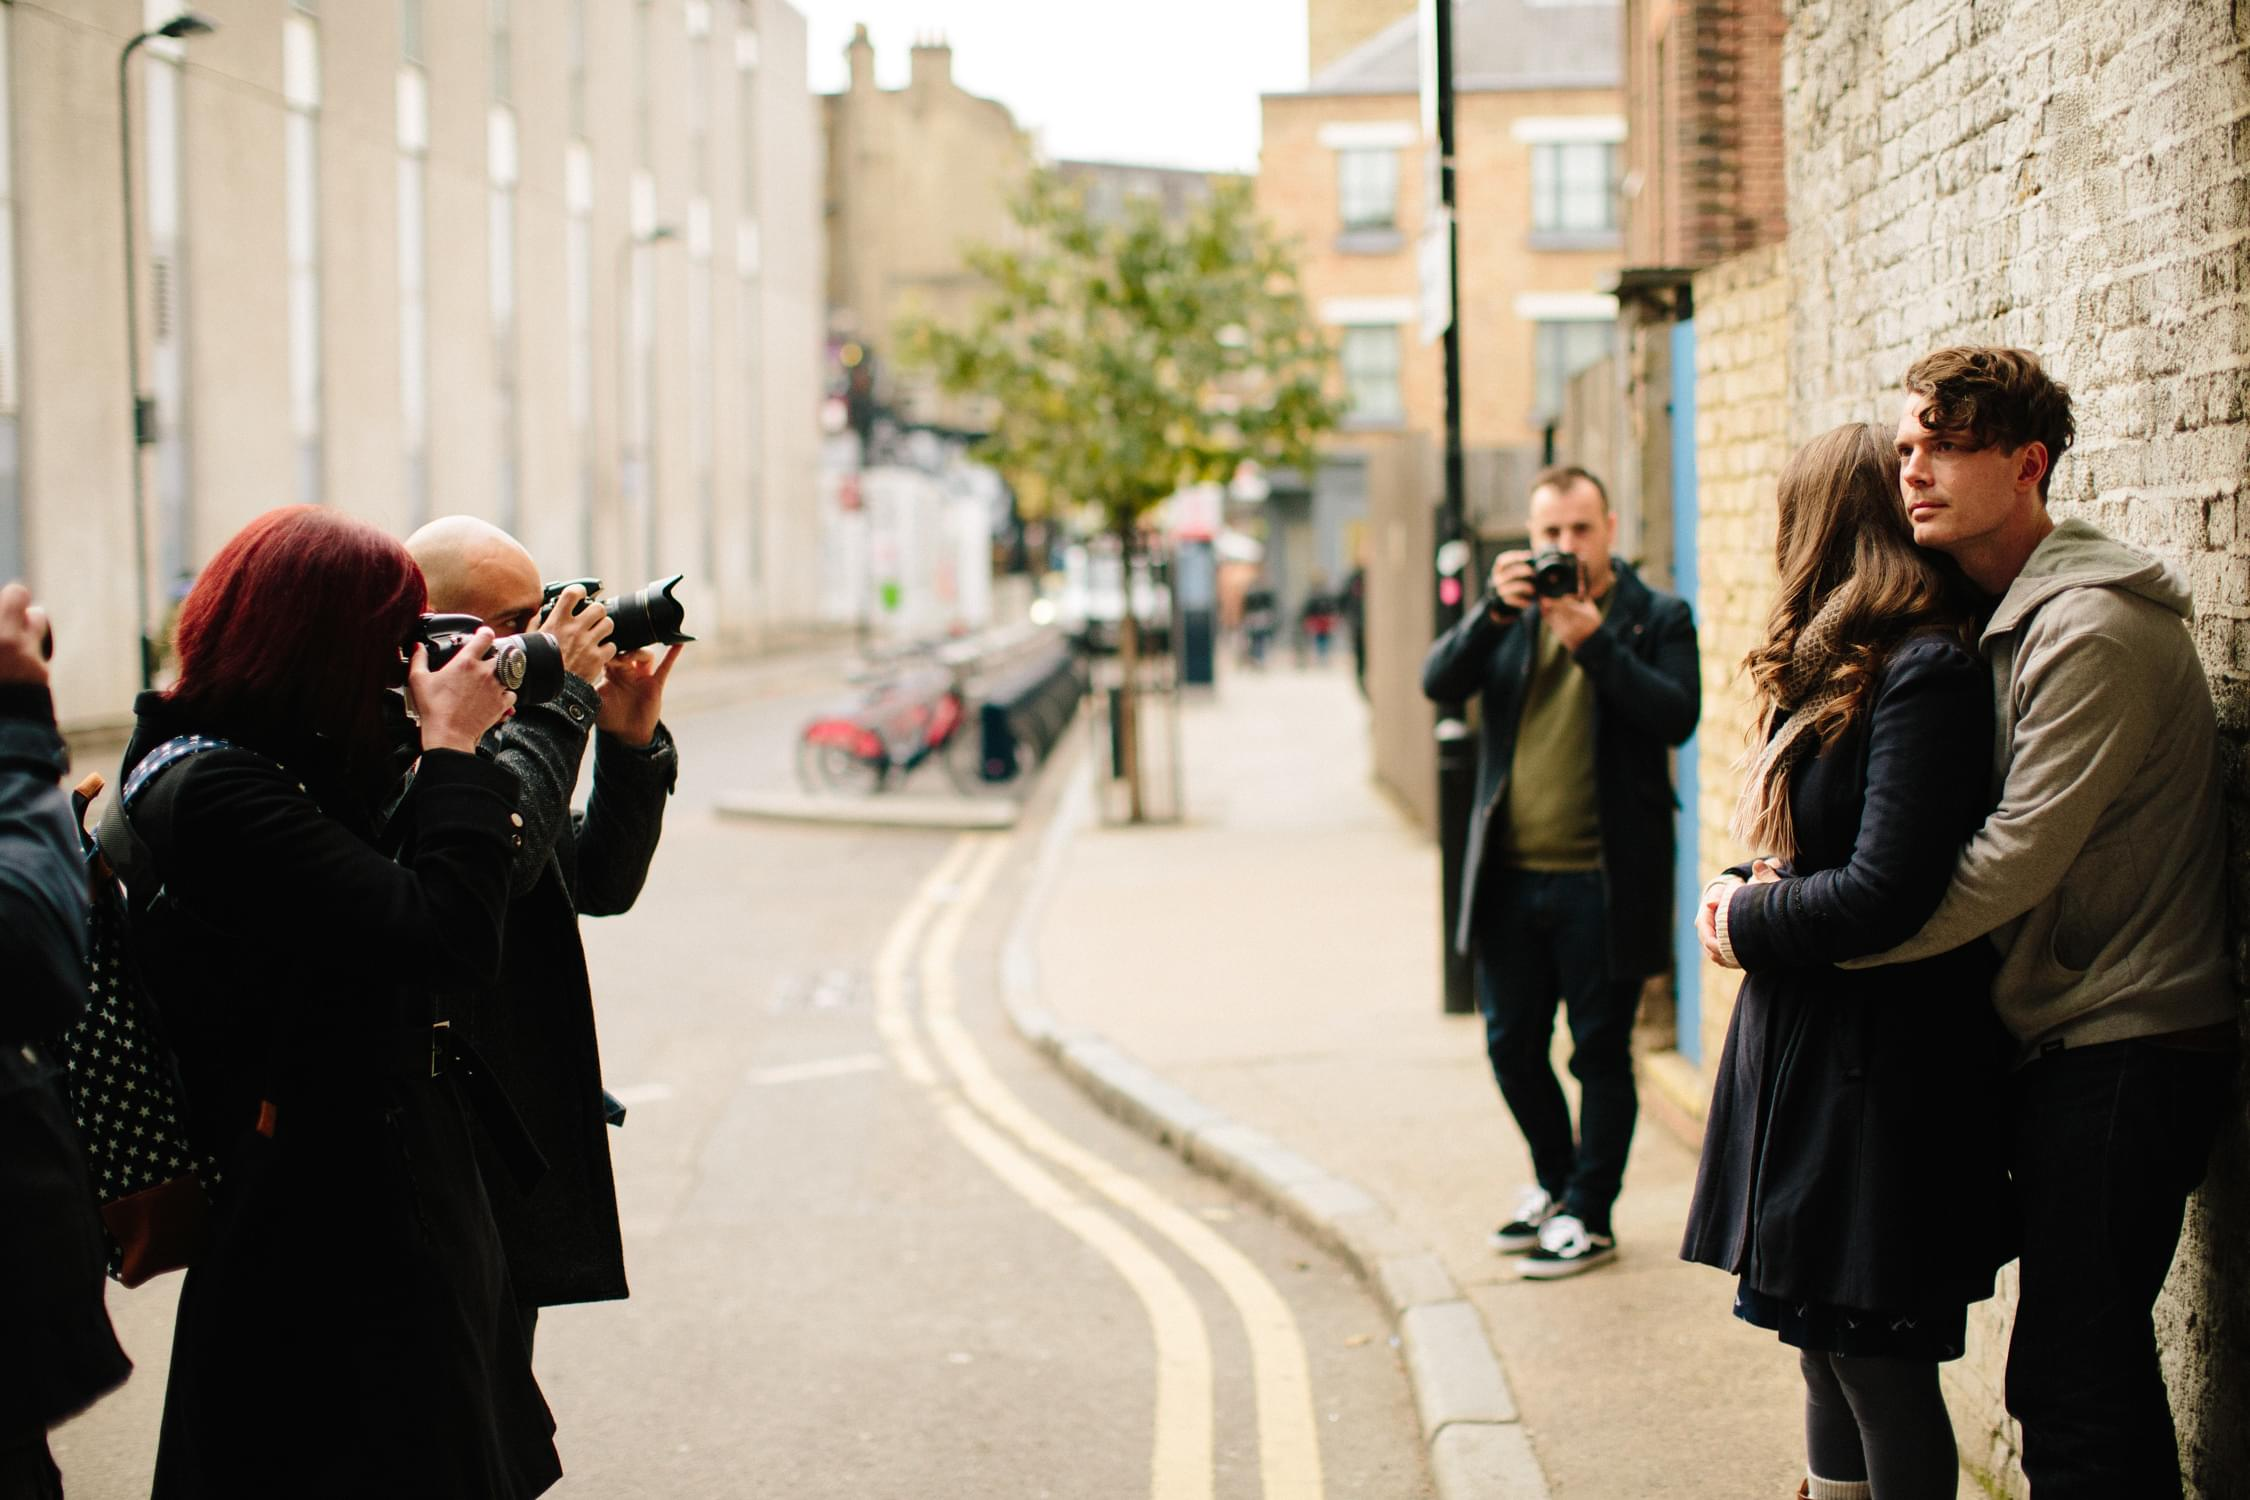 share-the-journey-london-wedding-photography-workshop-19